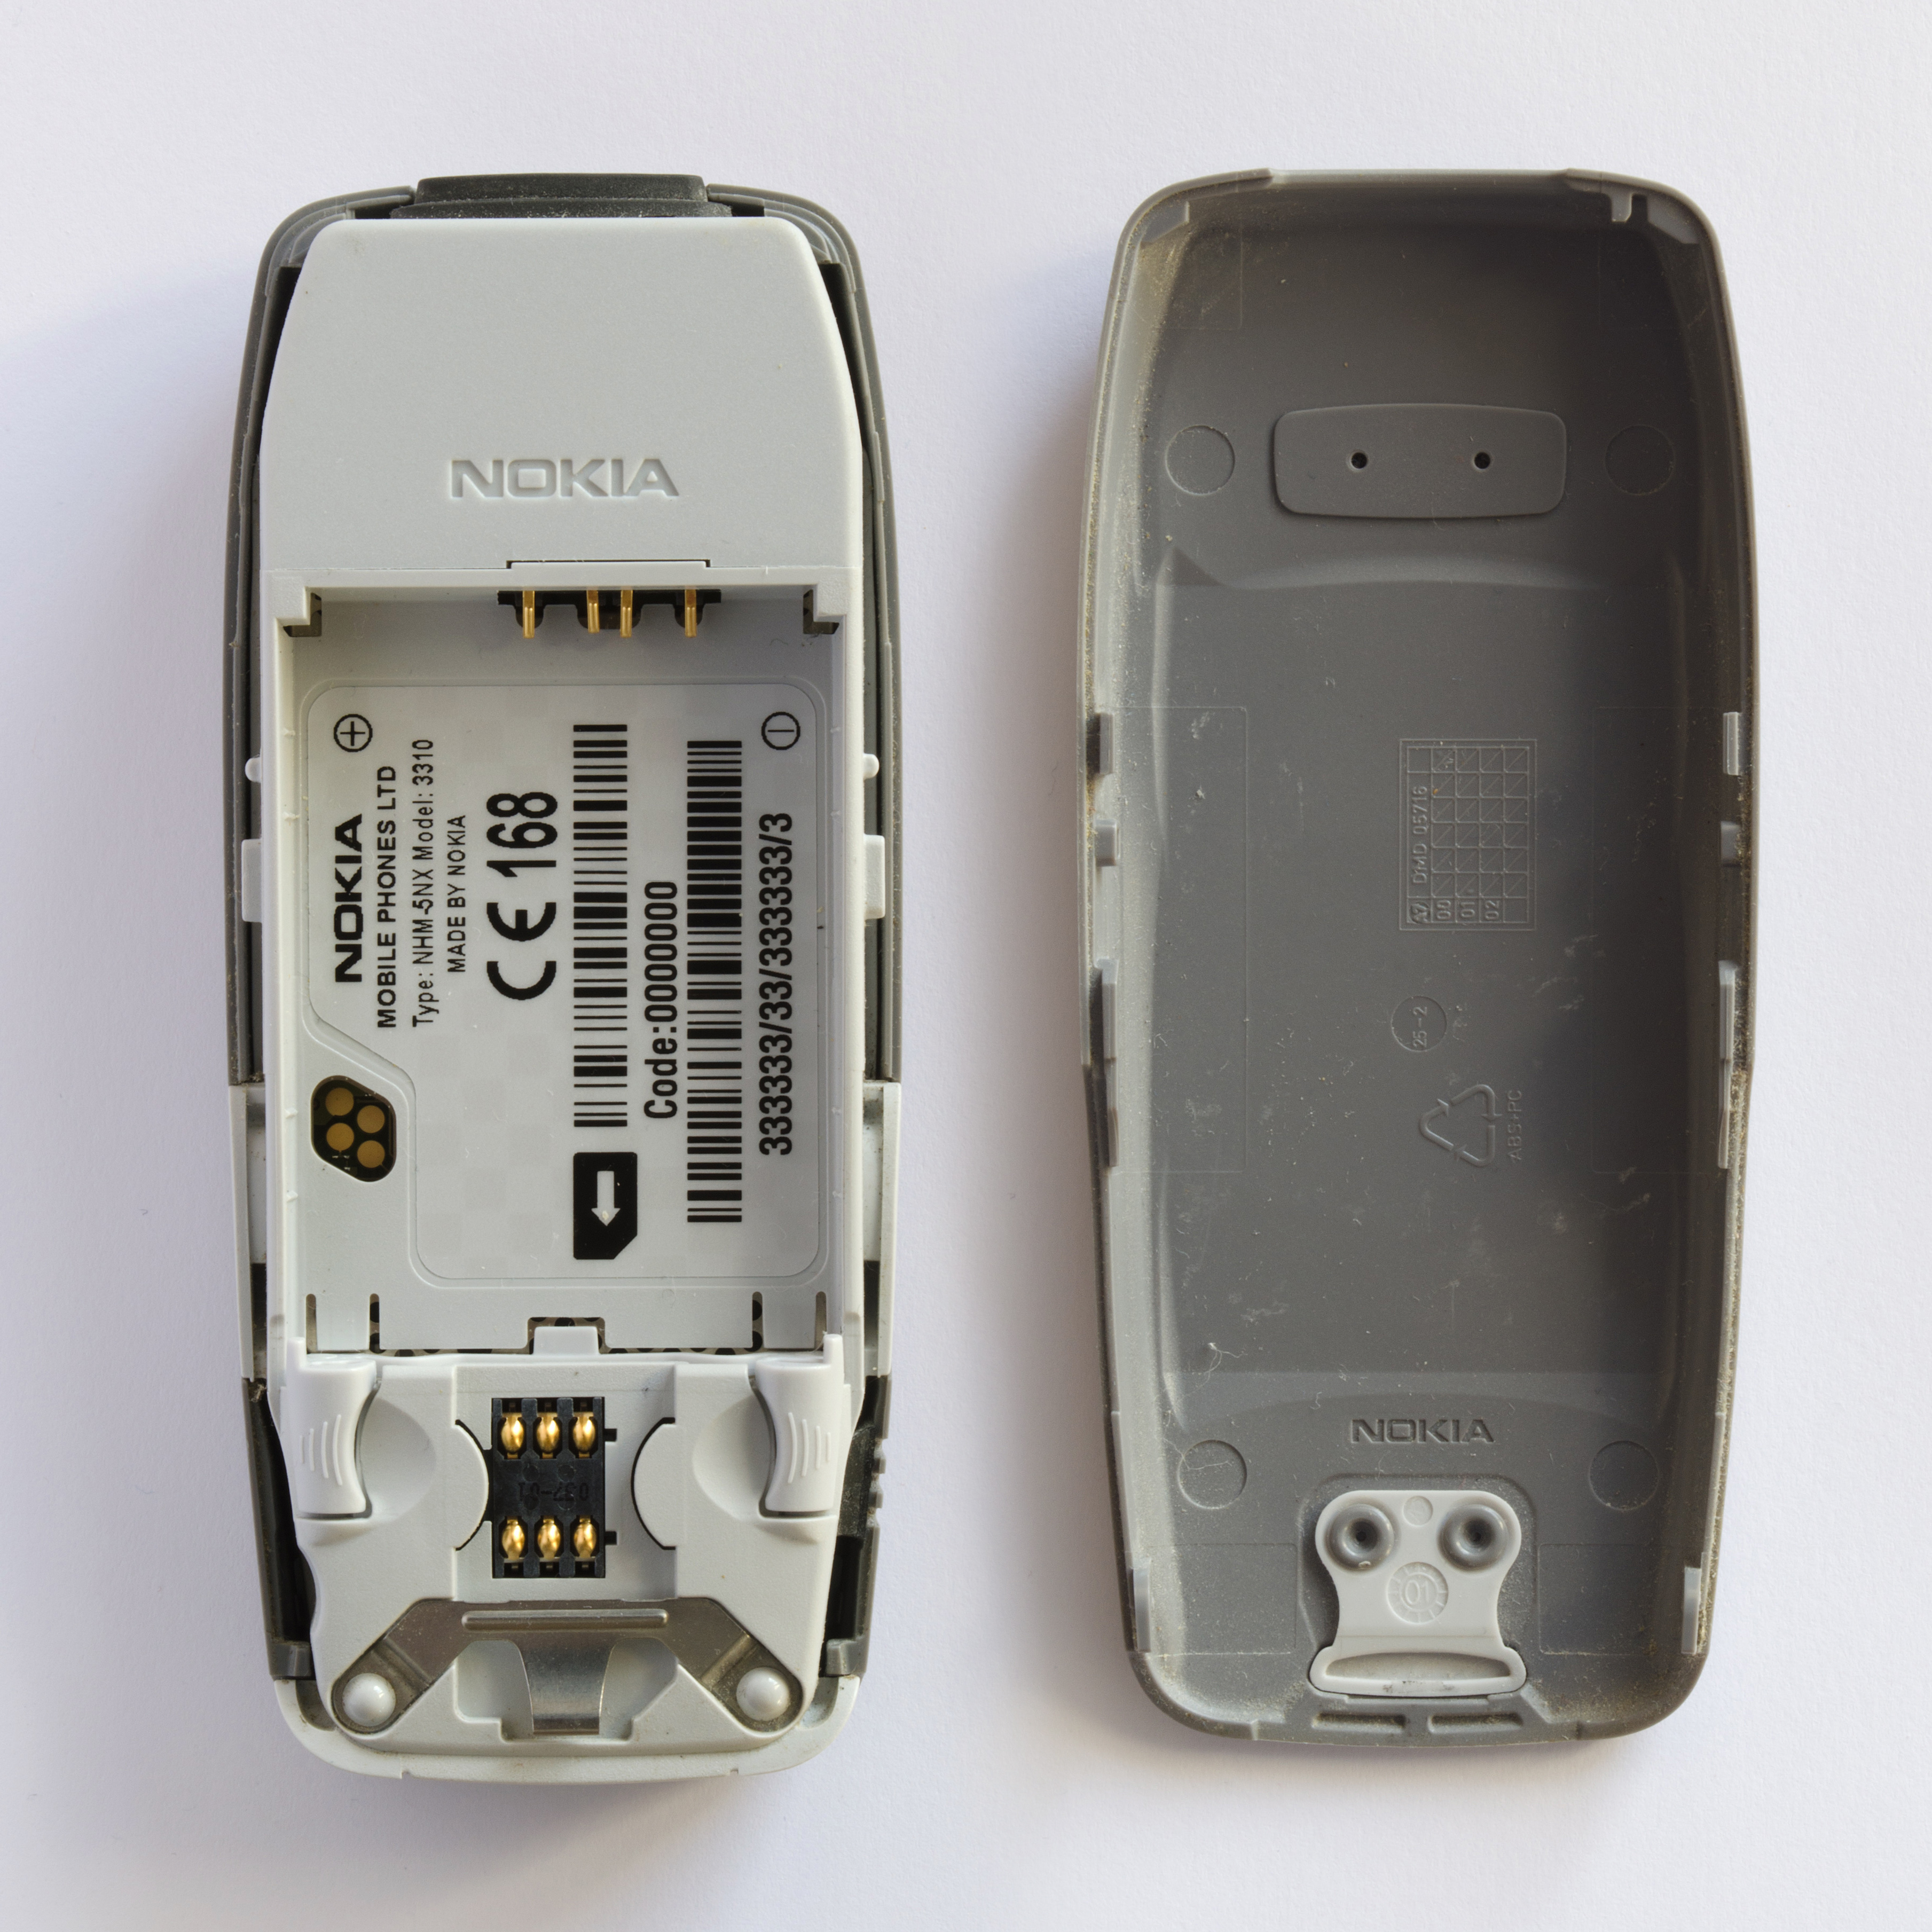 Ring Size Chart In Inches: Nokia 3310 - Wikipedia,Chart